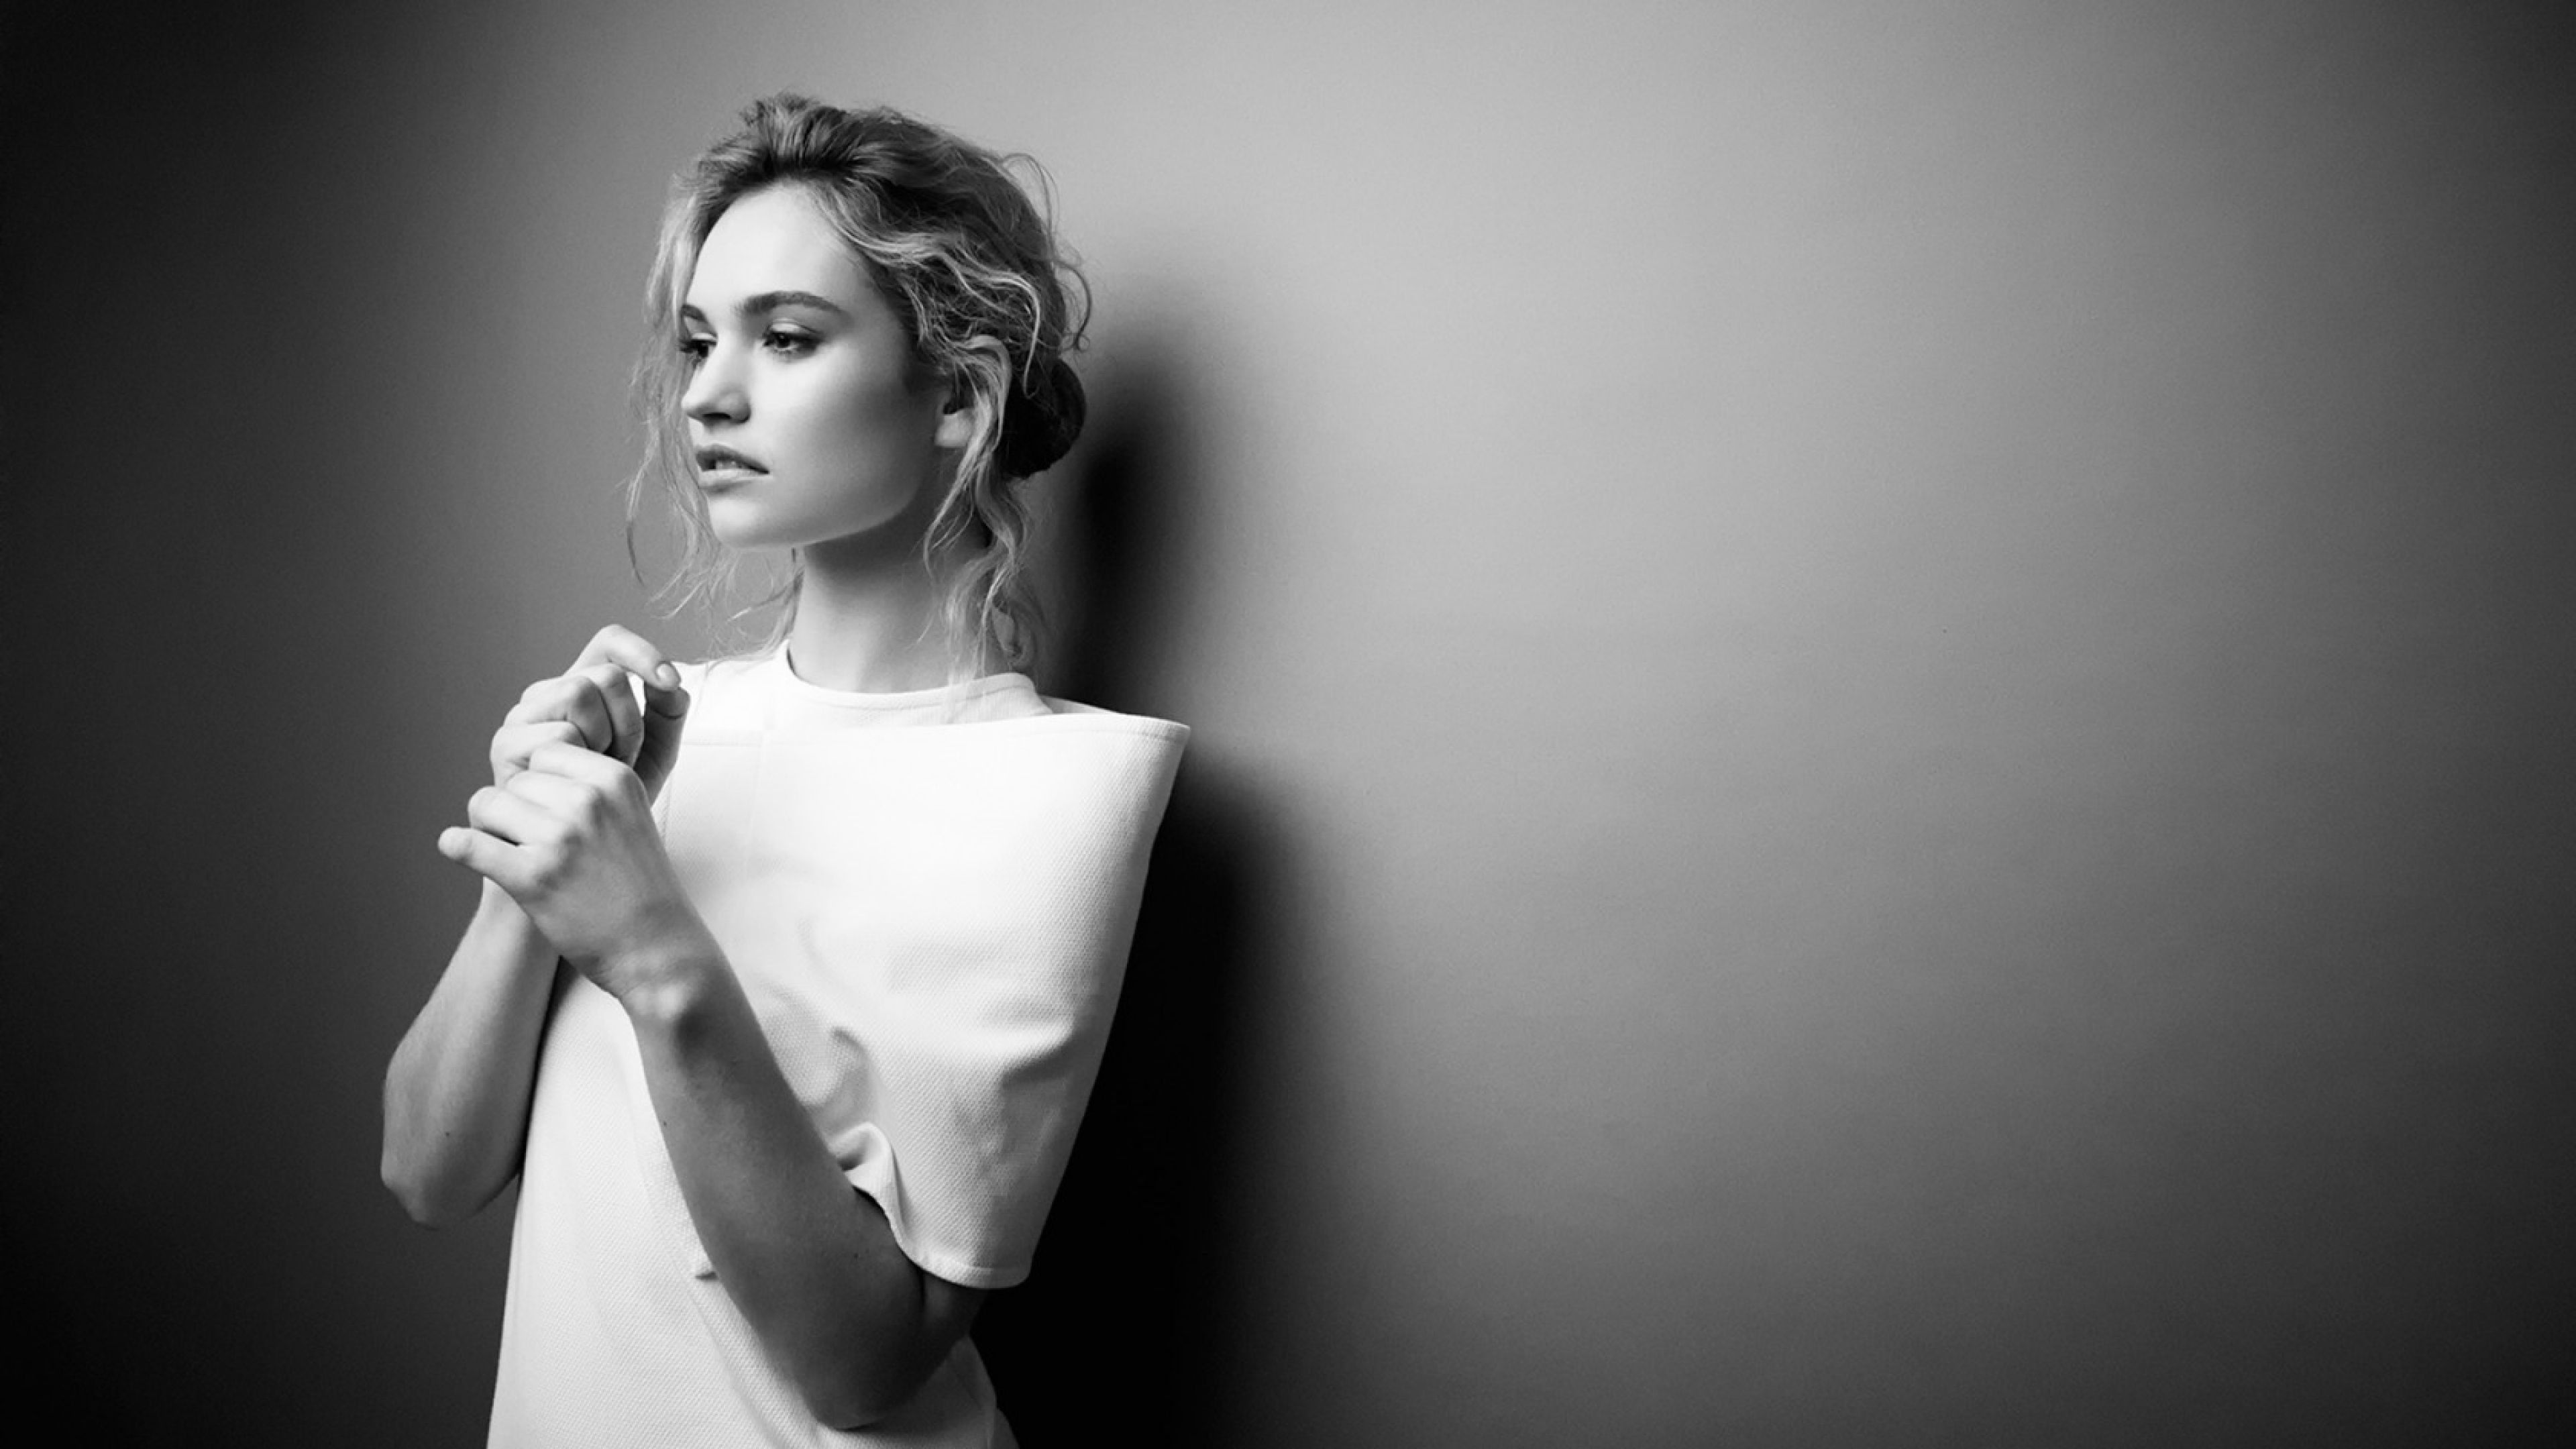 lily james celebrity photoshoot glamour 4k | sexy hot babes | pinterest